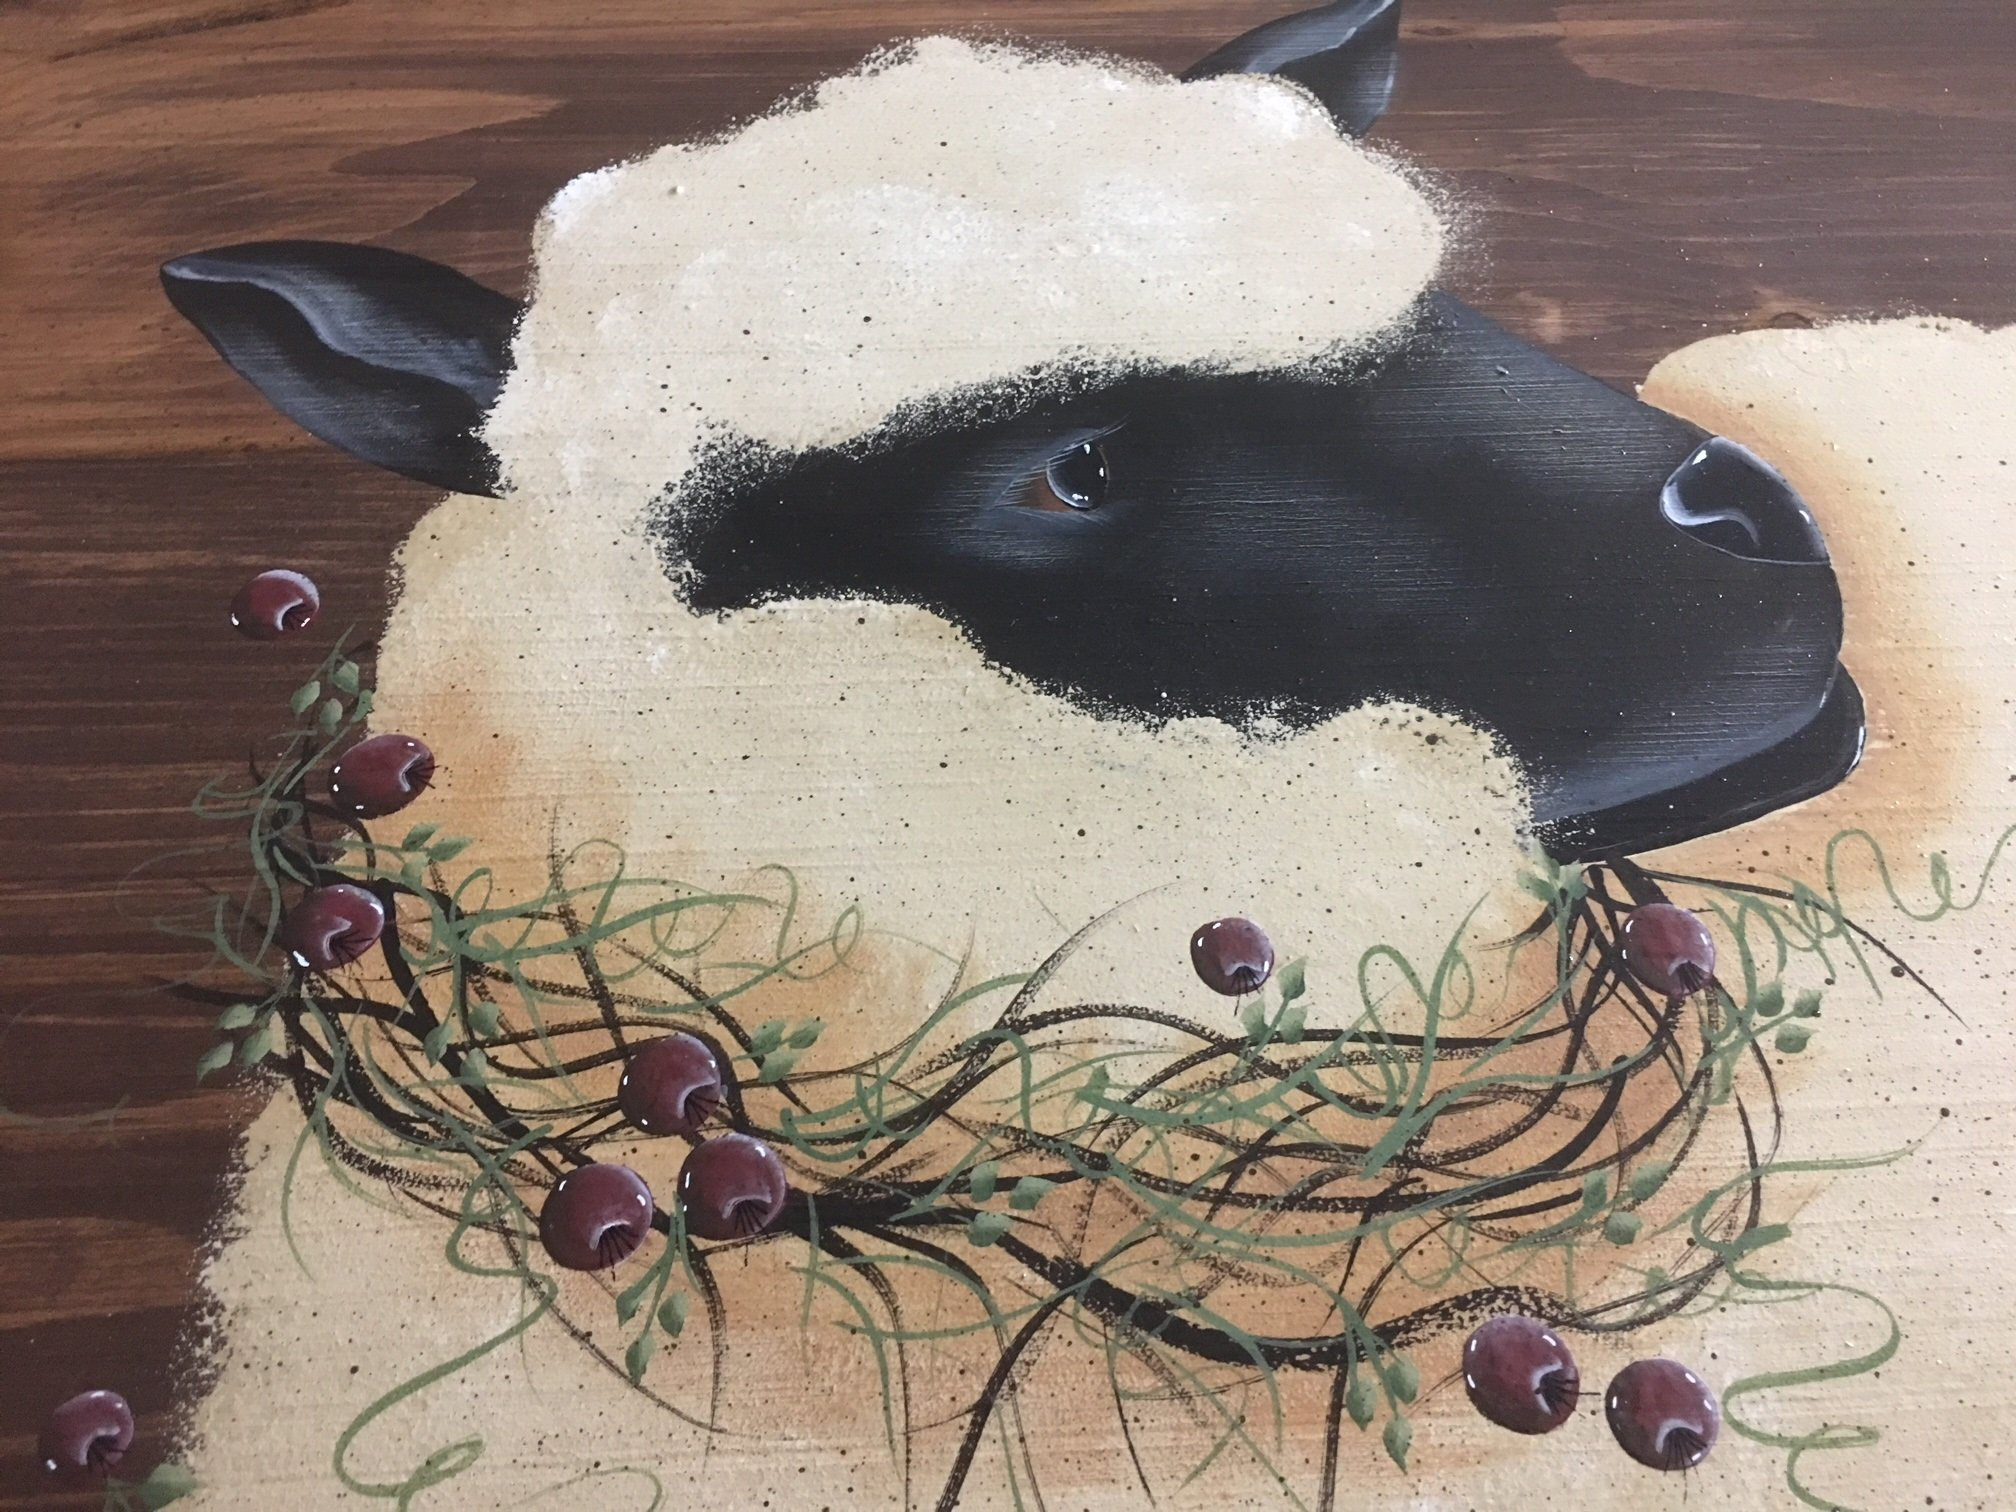 Primitive Painted Decor Suffolk Sheep Gooseberry Wreath Wood Stove Noodle Board 24X30 by Primitive Country Loft House (Image #3)